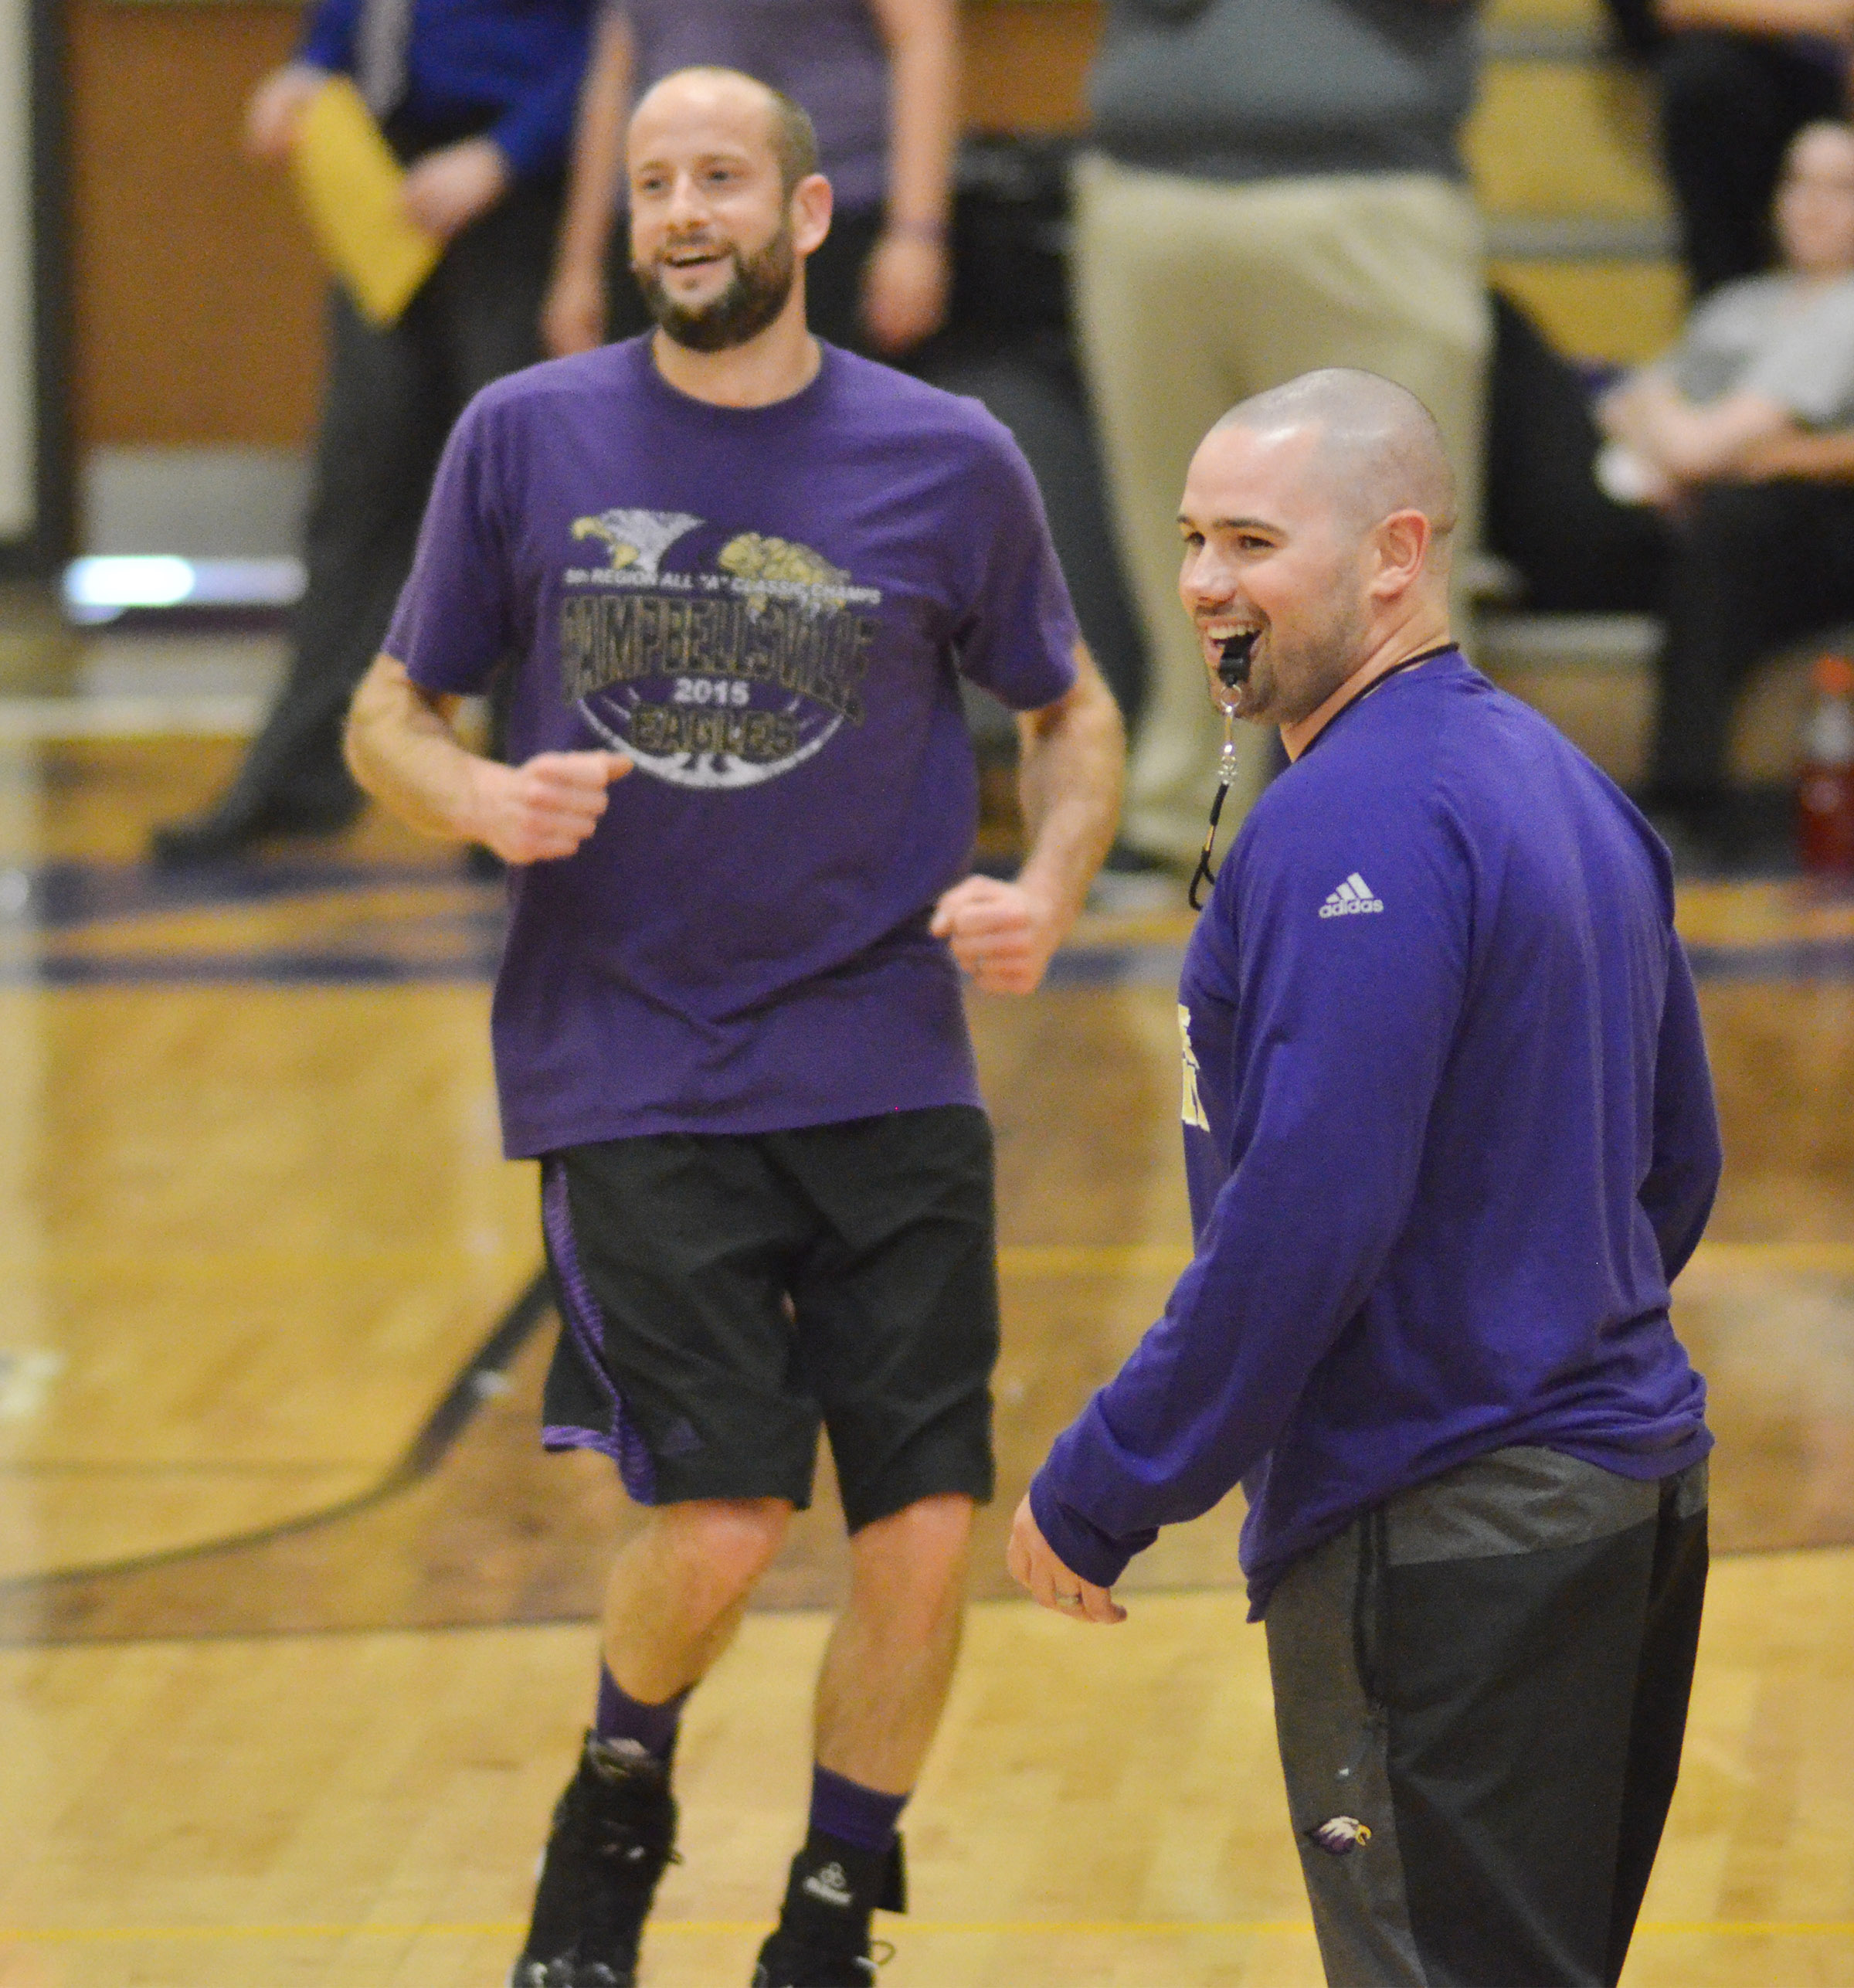 CHS teachers Ben Davis, at left, and Blake Milby smile as a member of the teacher's team scores a basket.